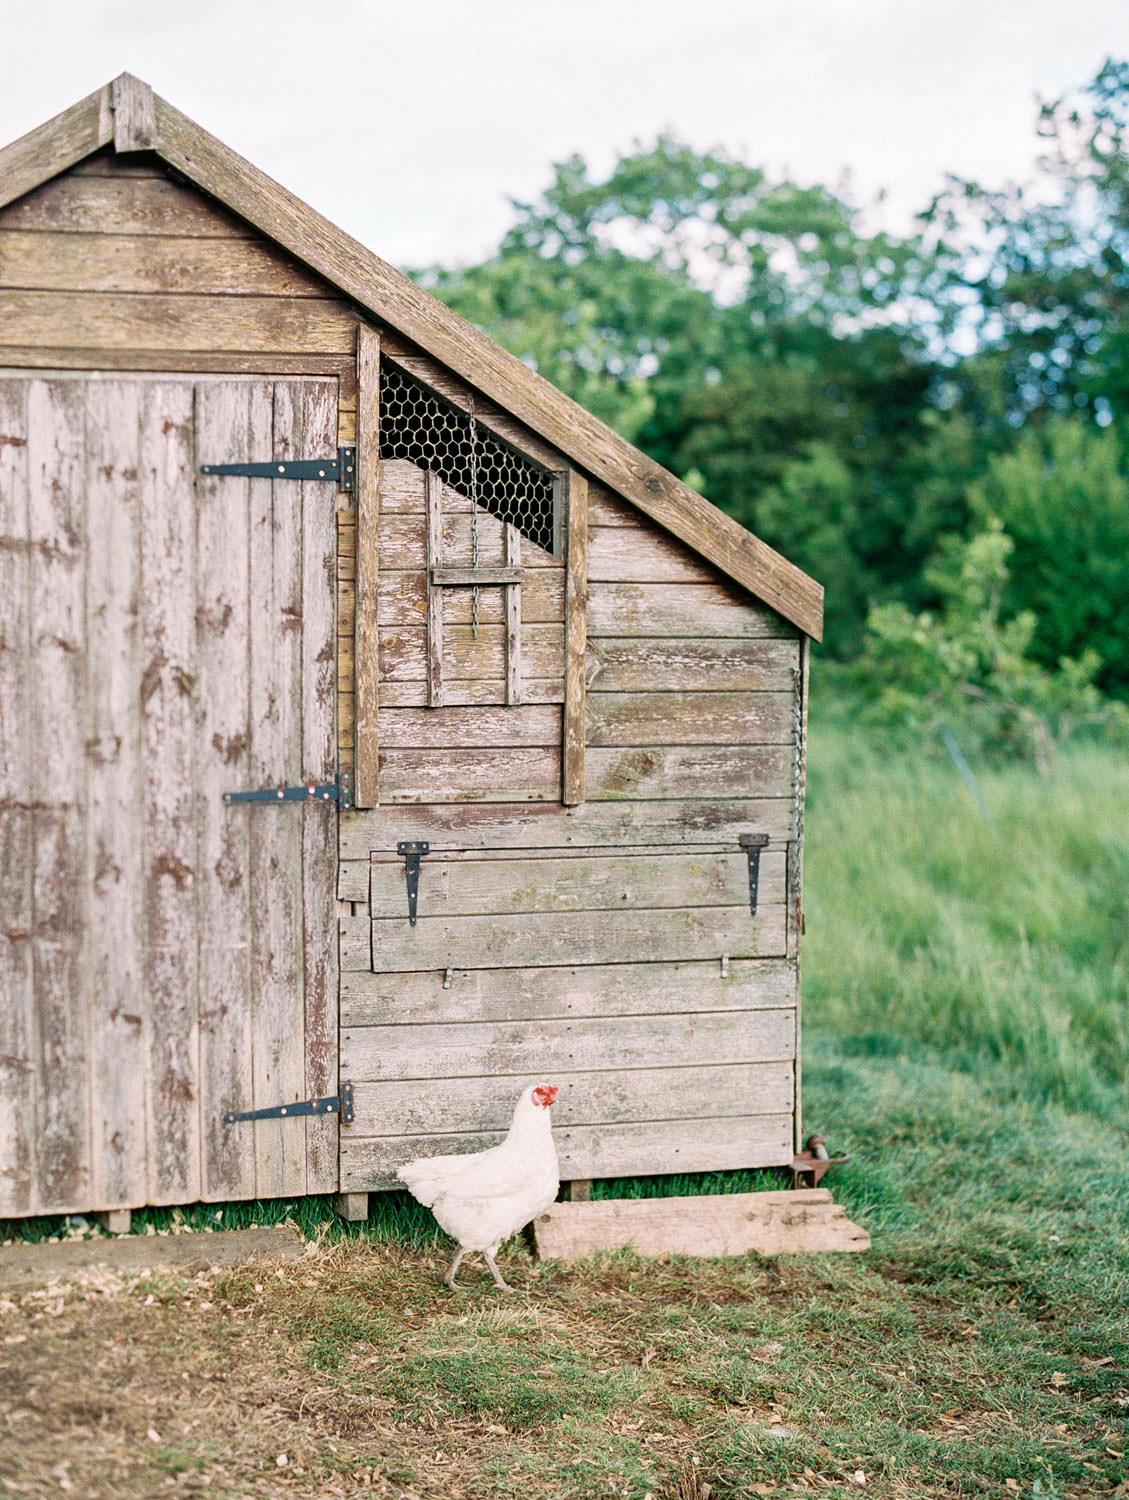 Barnsley House Hotel chicken coop. Flutter Magazine Retreat in the Cotswolds, England. Photo by Cavin Elizabeth Photography on film